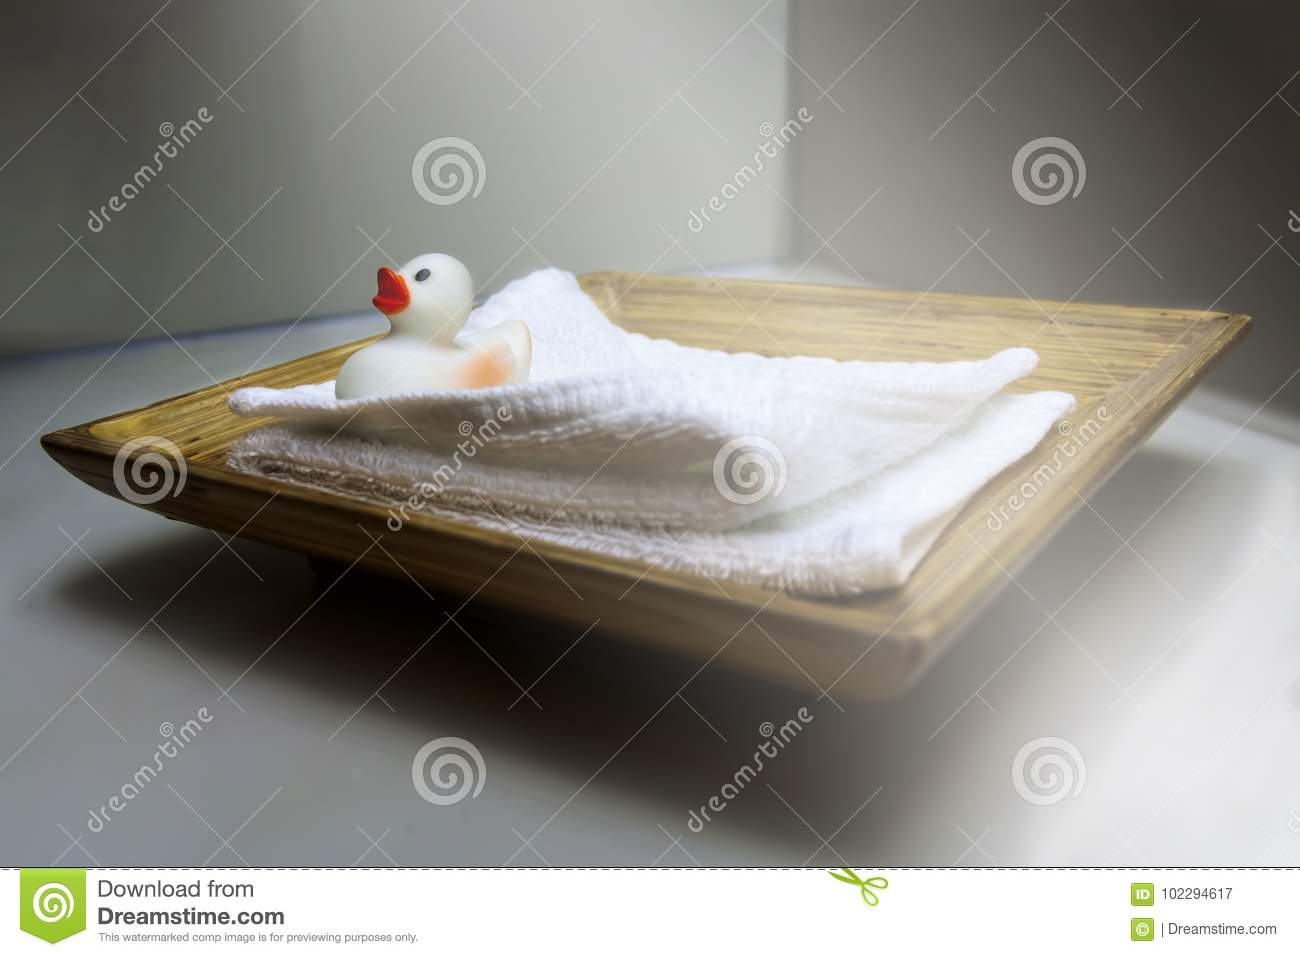 Duckling on a towel in a hotel